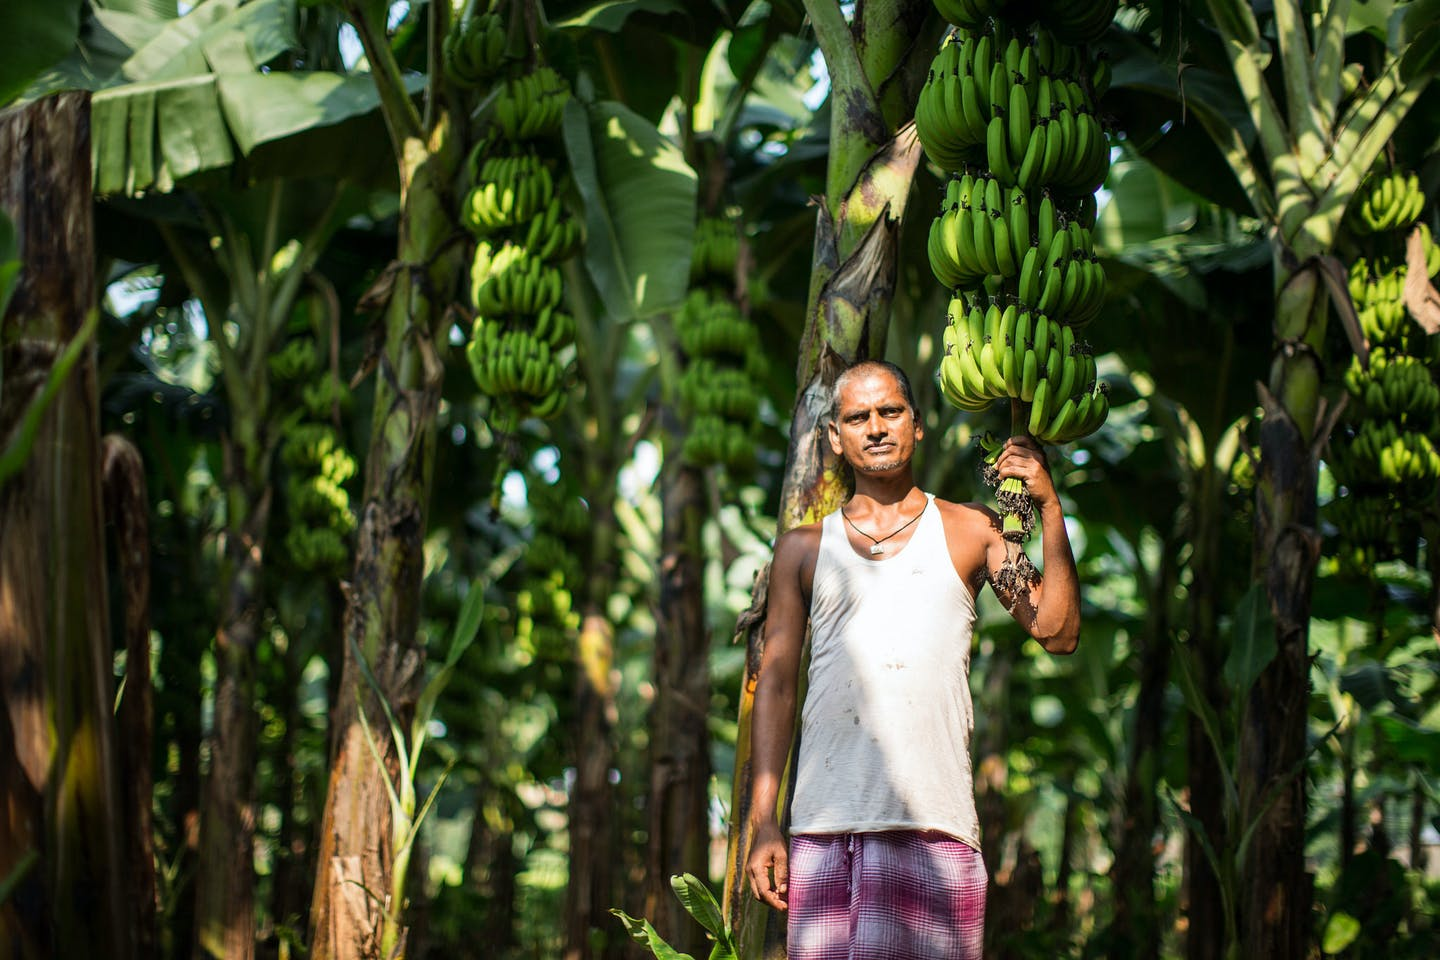 A banana farmer in Nepal